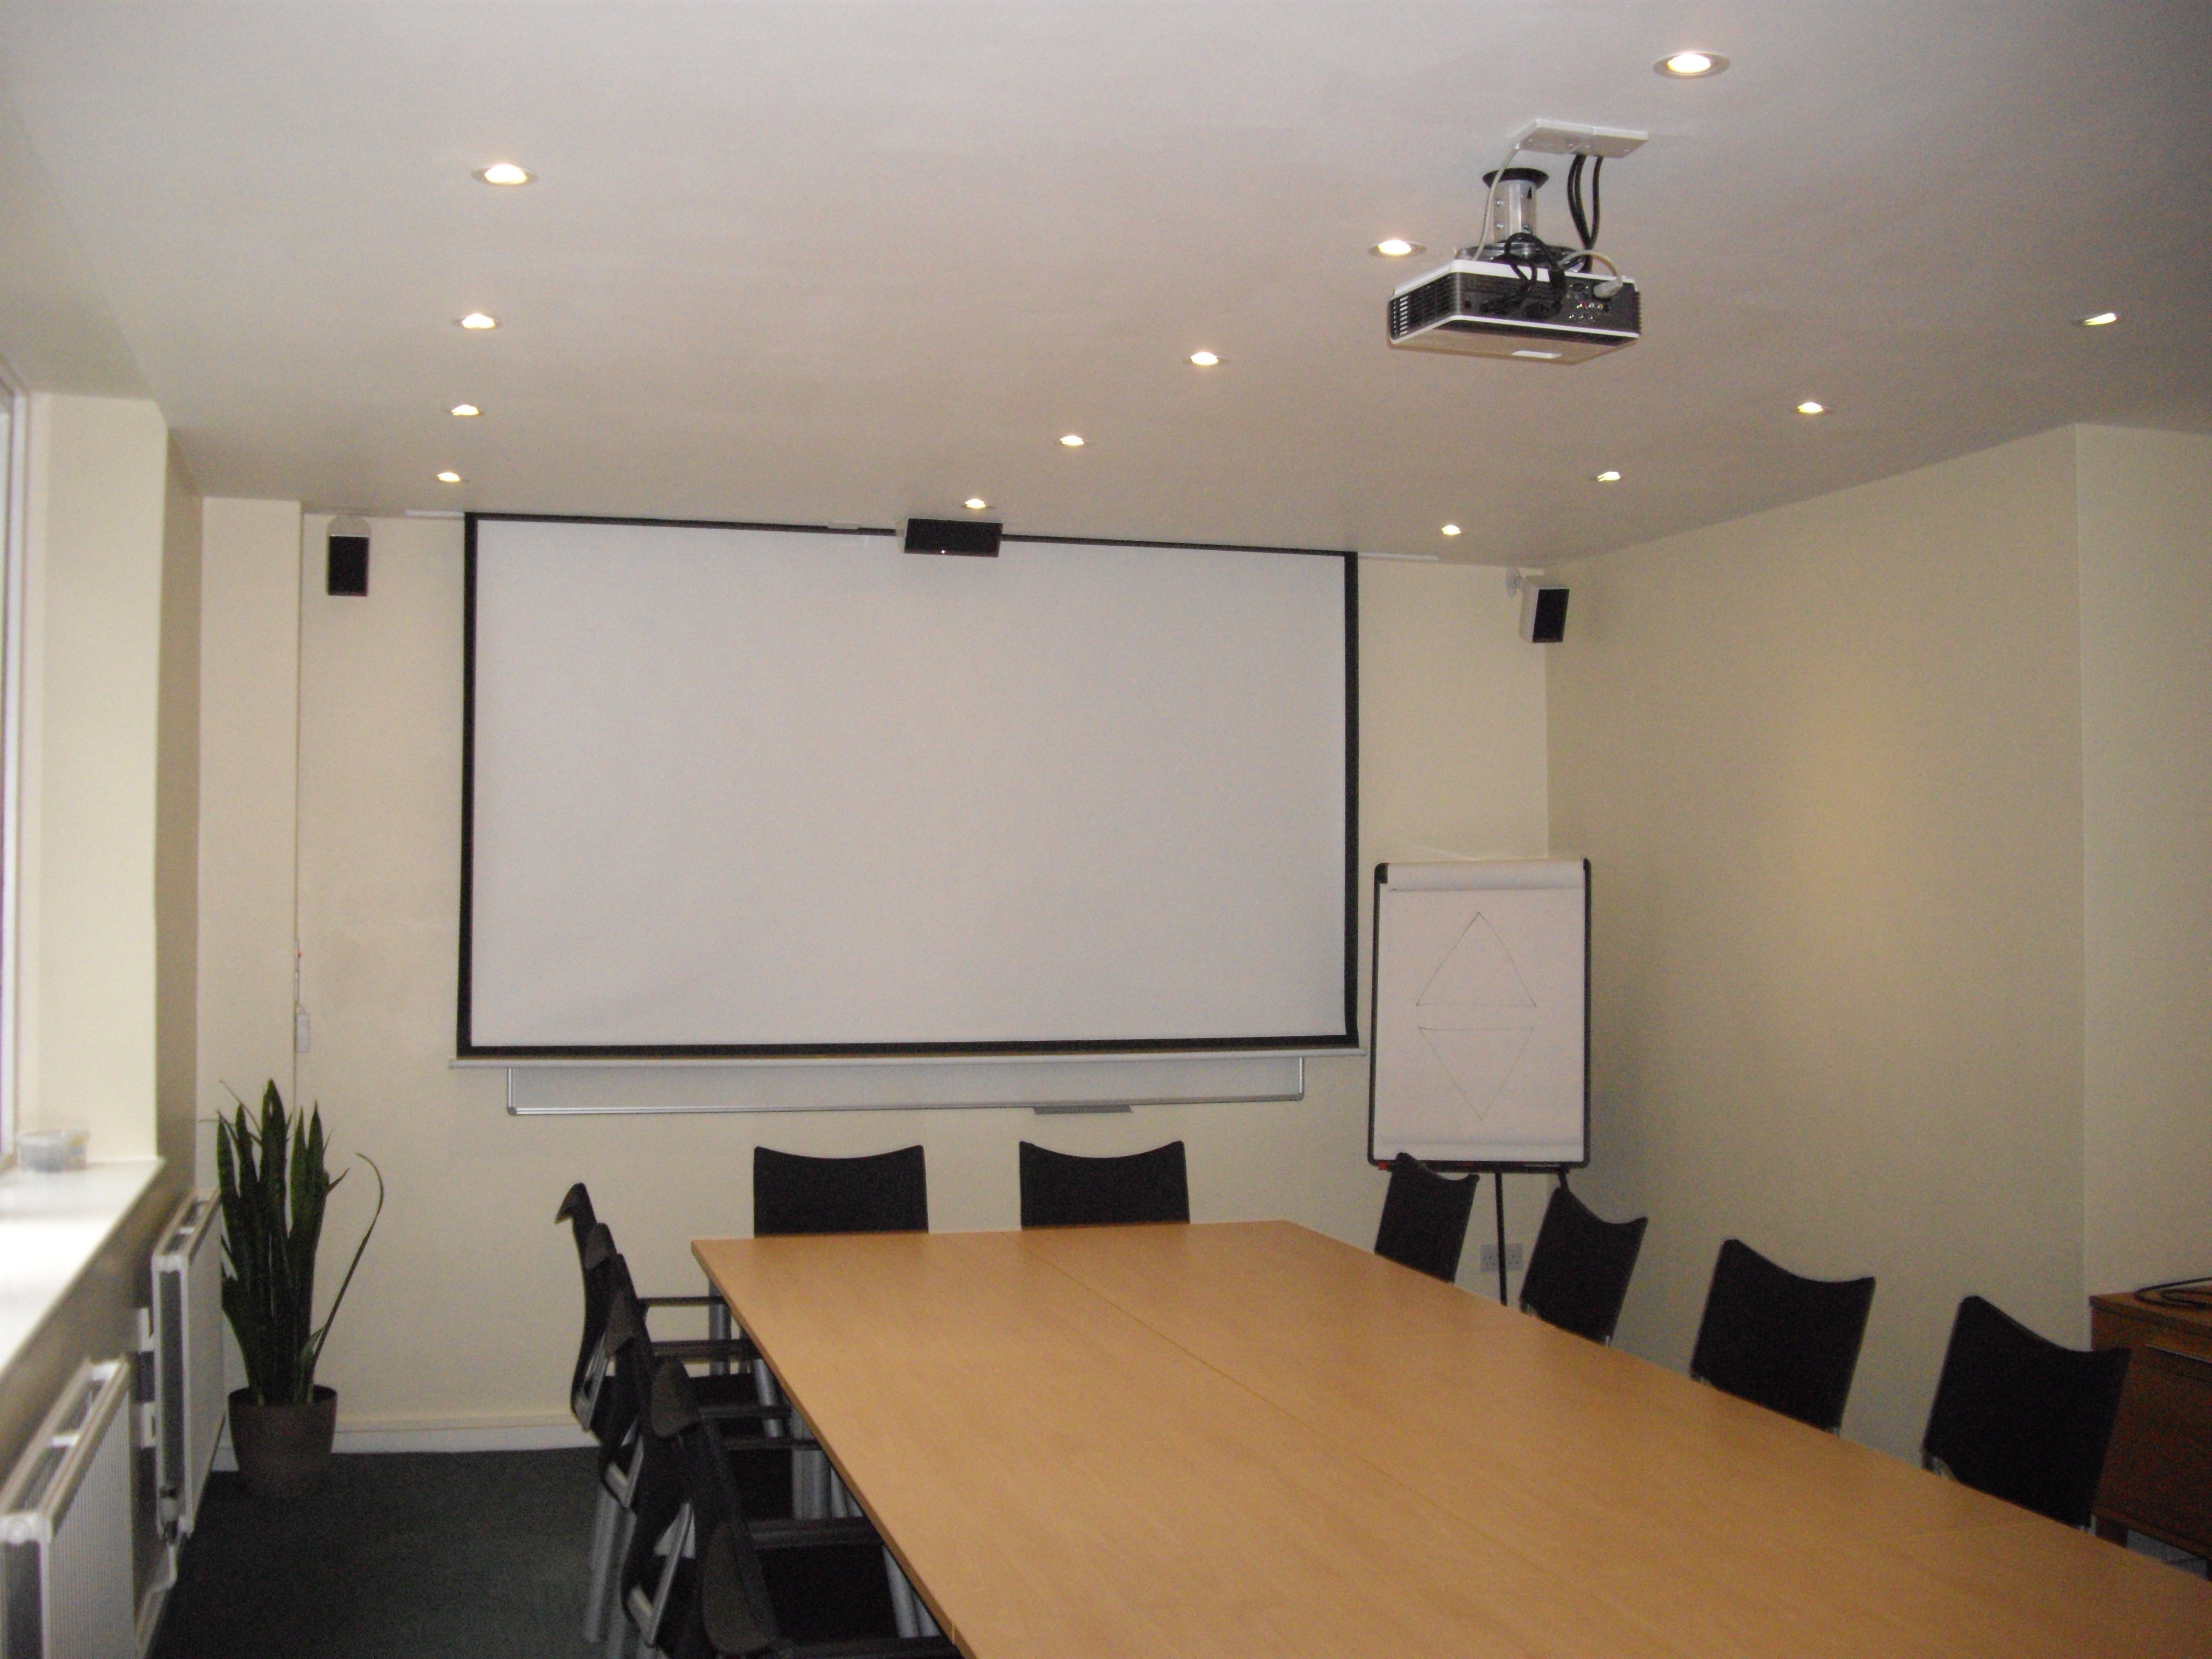 Let us add electrics to your board / meeting room